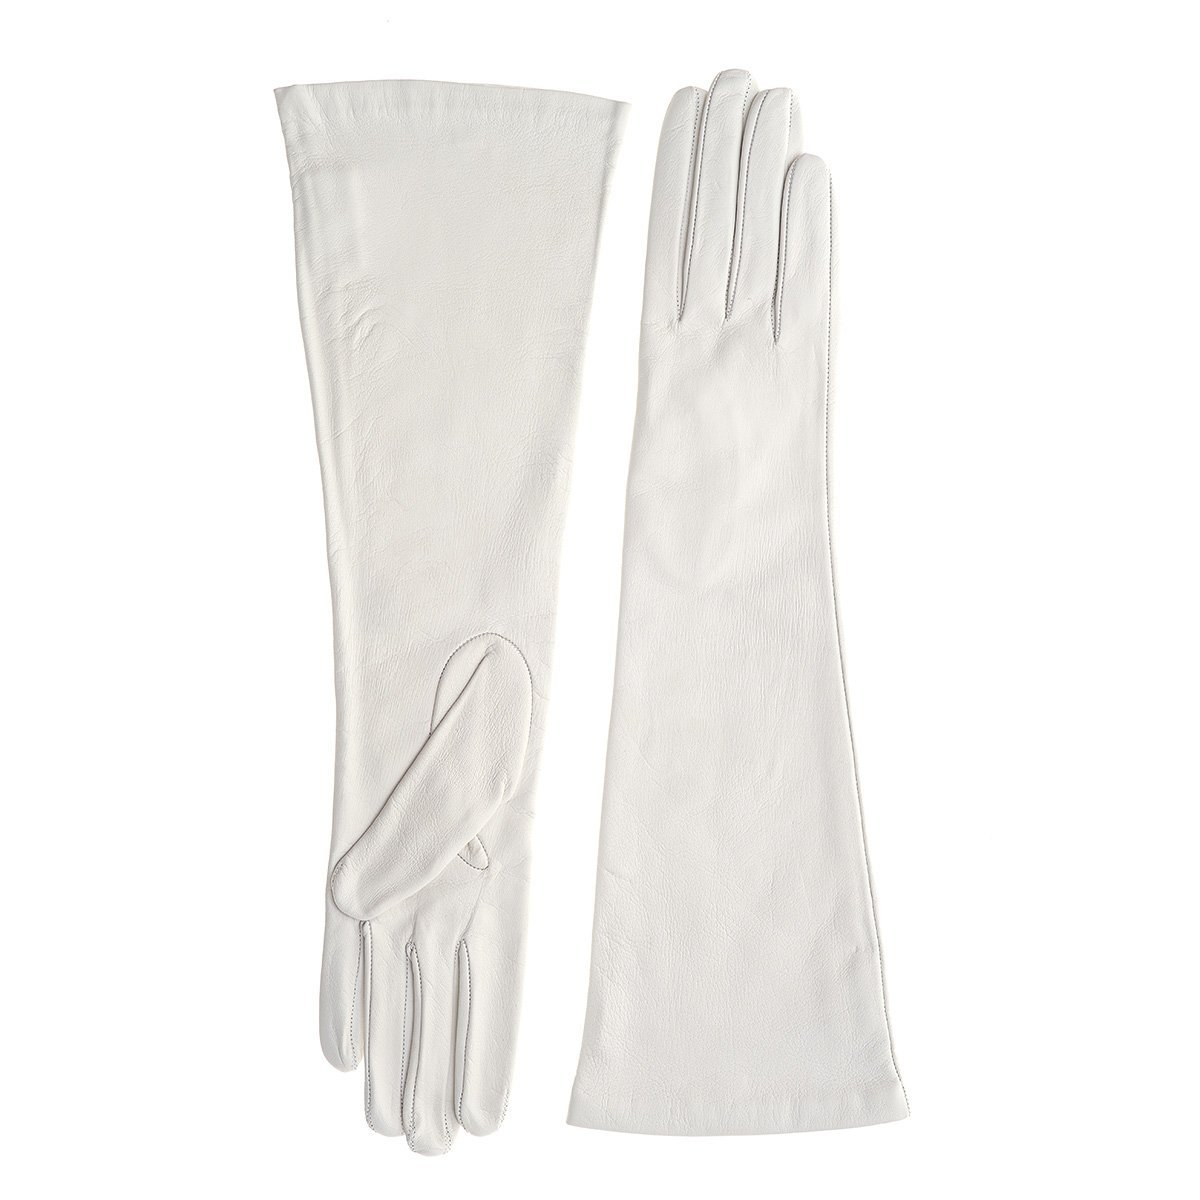 Silk Lined Long Black or White Leather Gloves (WHITE-XL) by Go Gloves (Image #1)